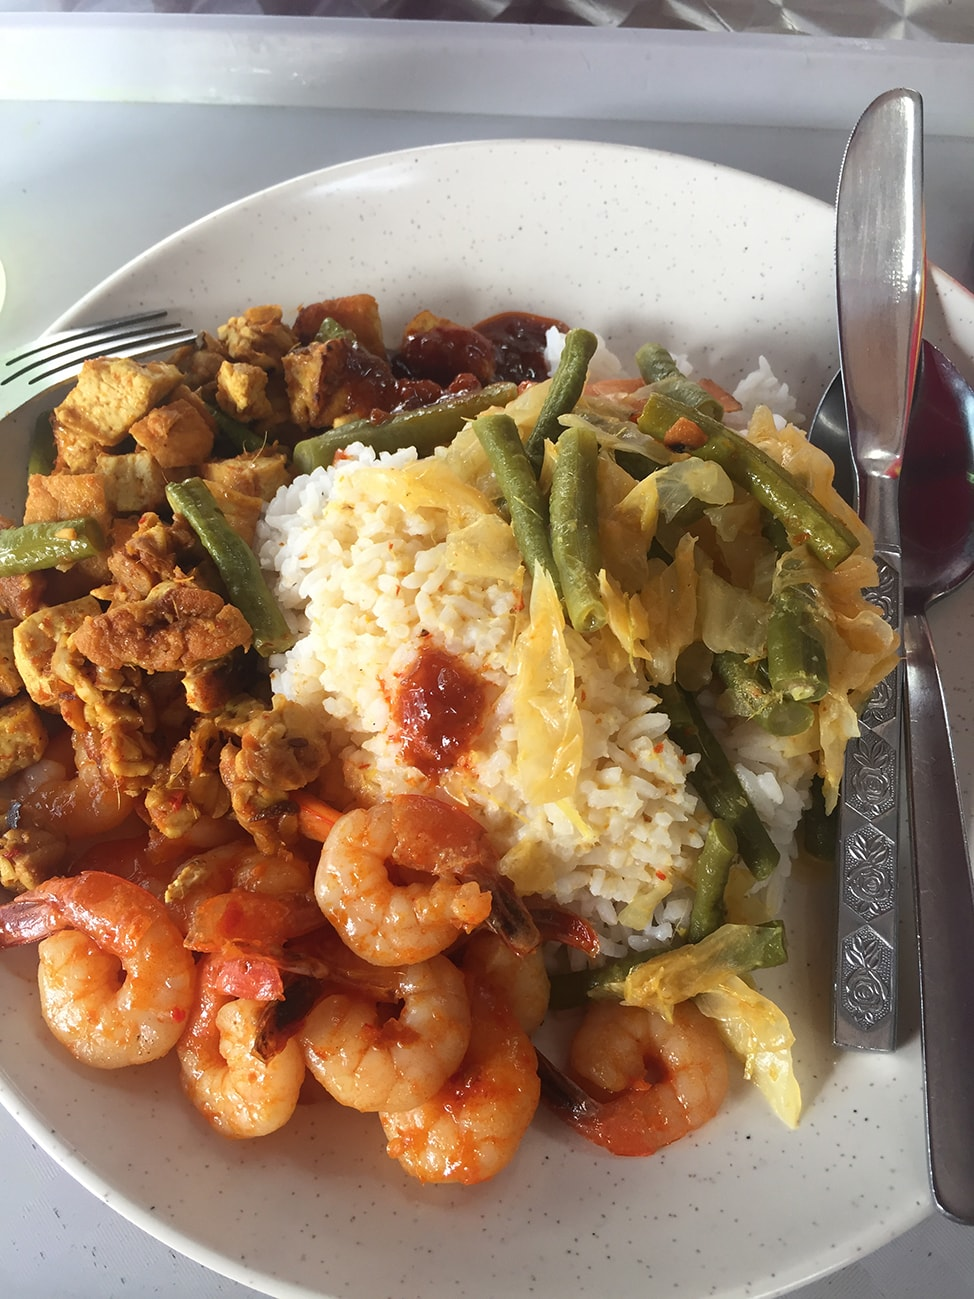 Delicious plate of food at Kampong Glam Cafe